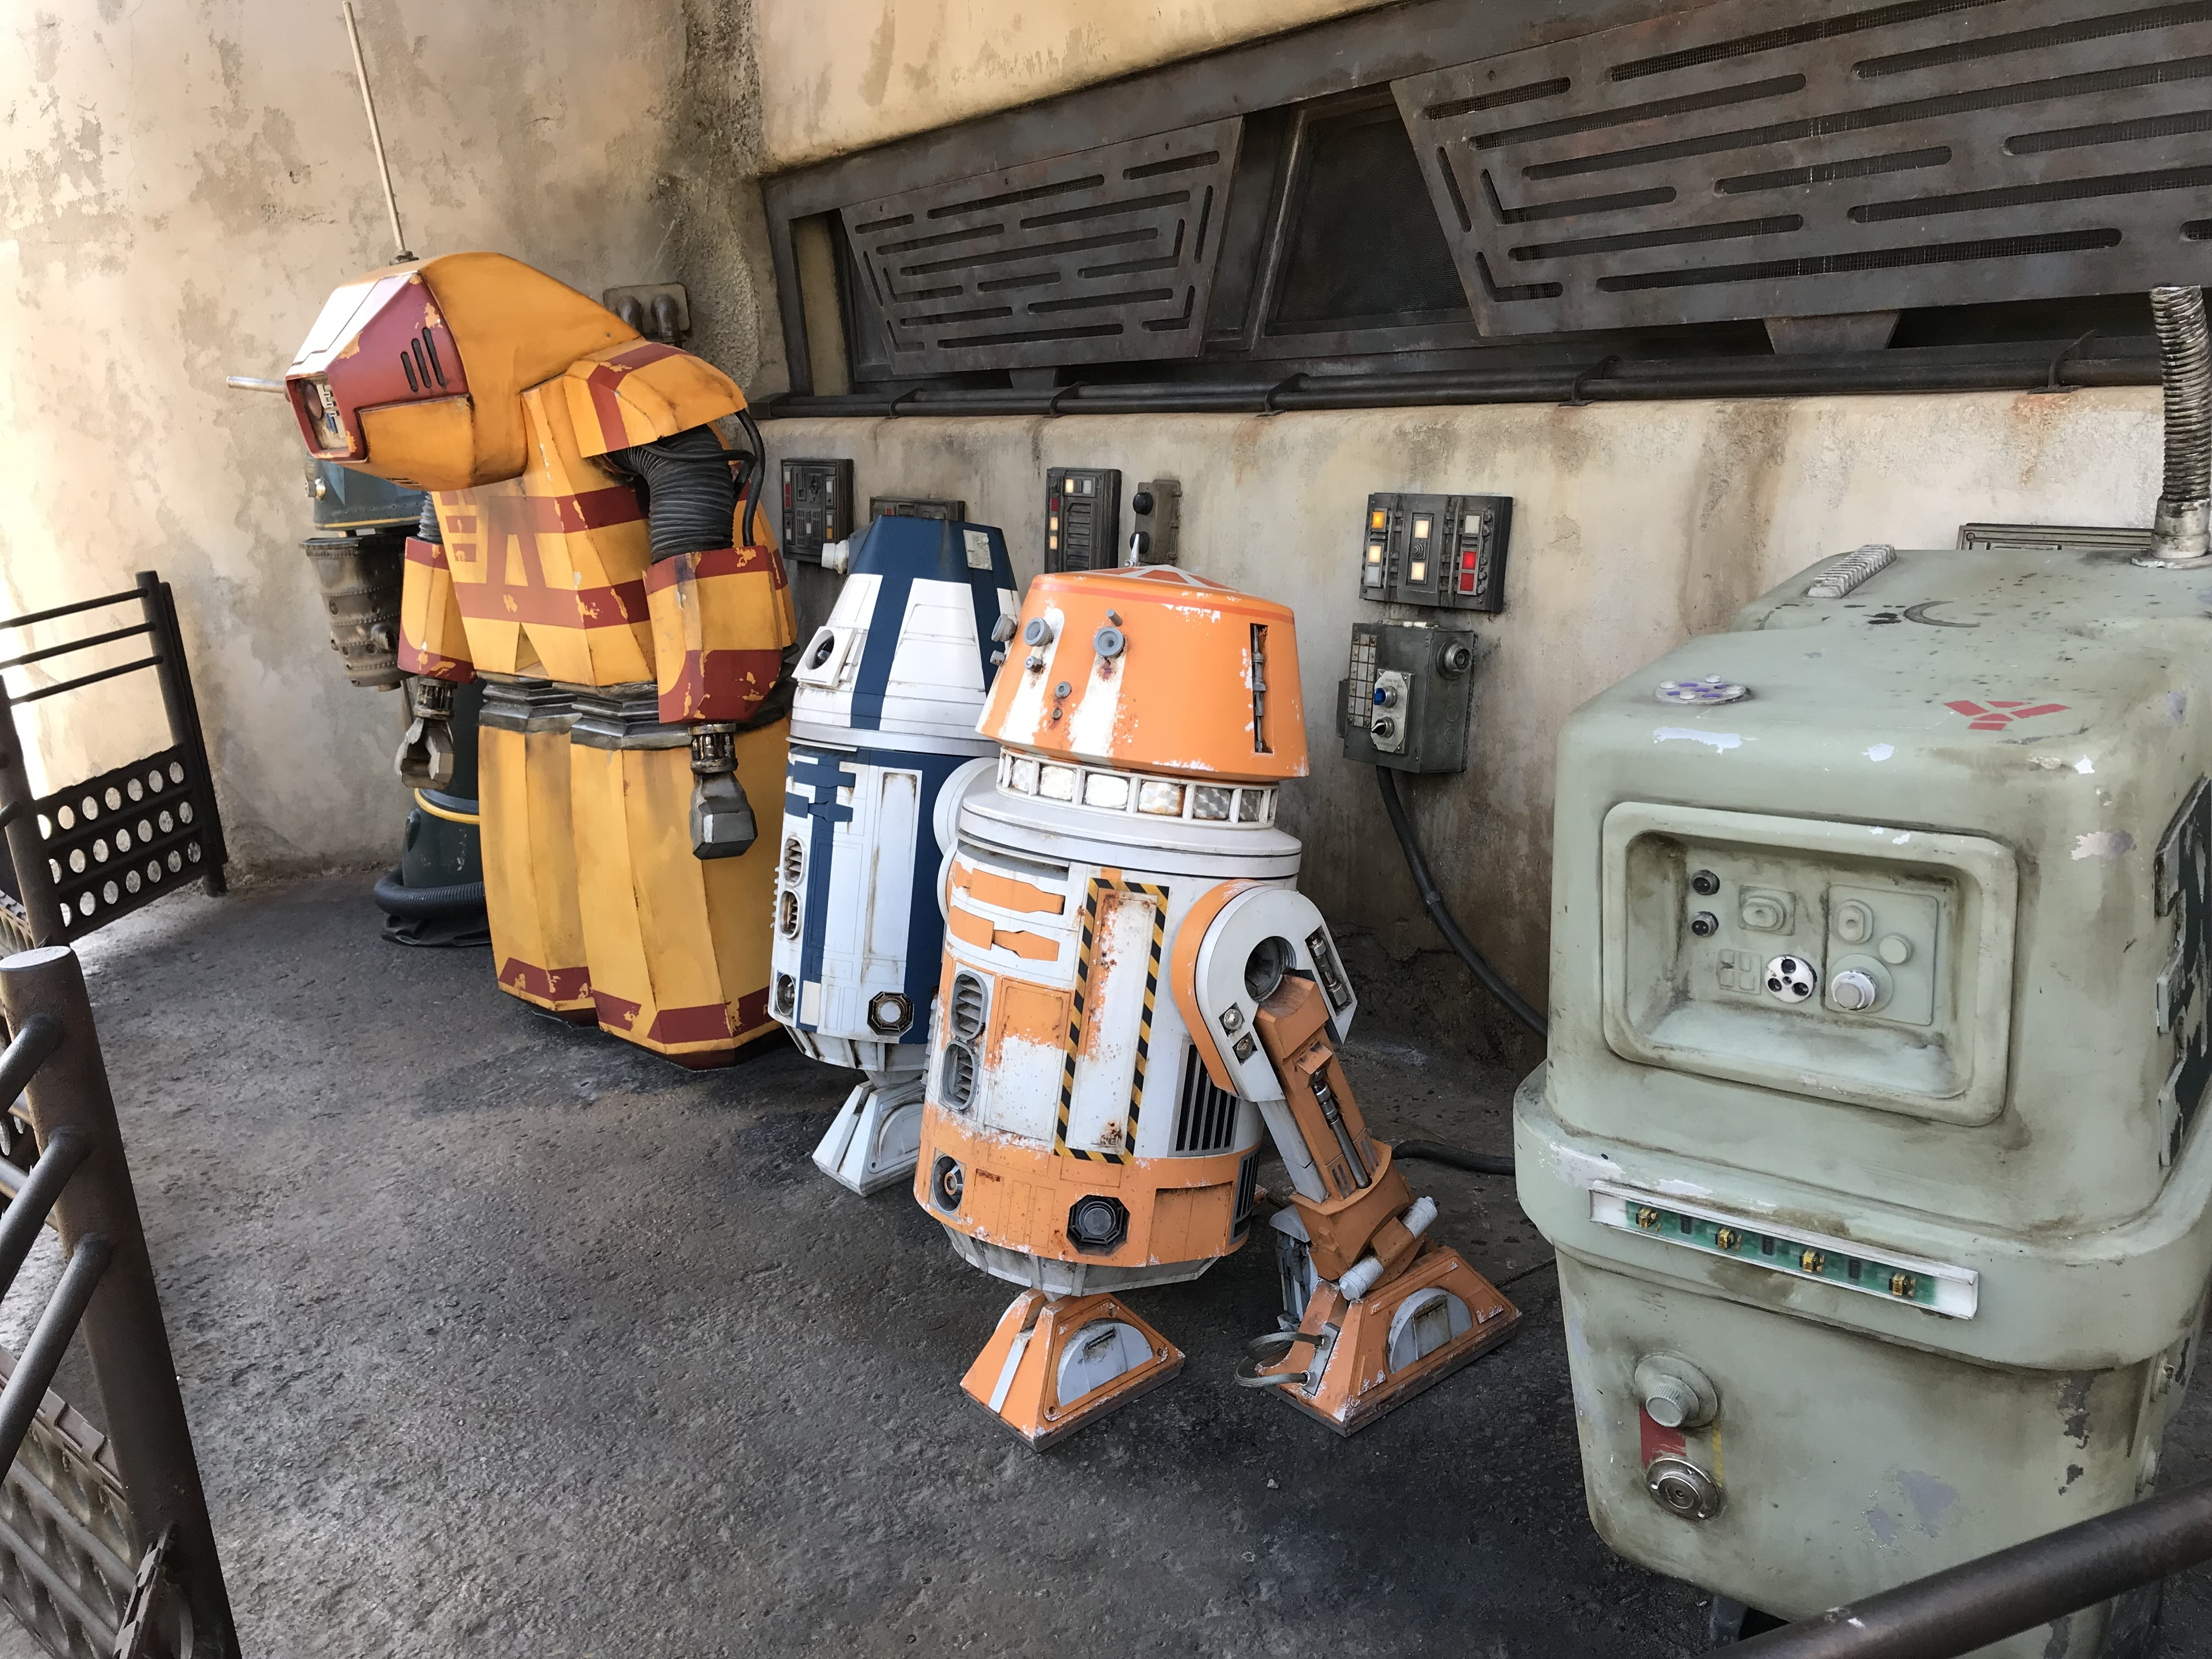 10 Things You Have To Do Inside Galaxy's Edge at Disneyland